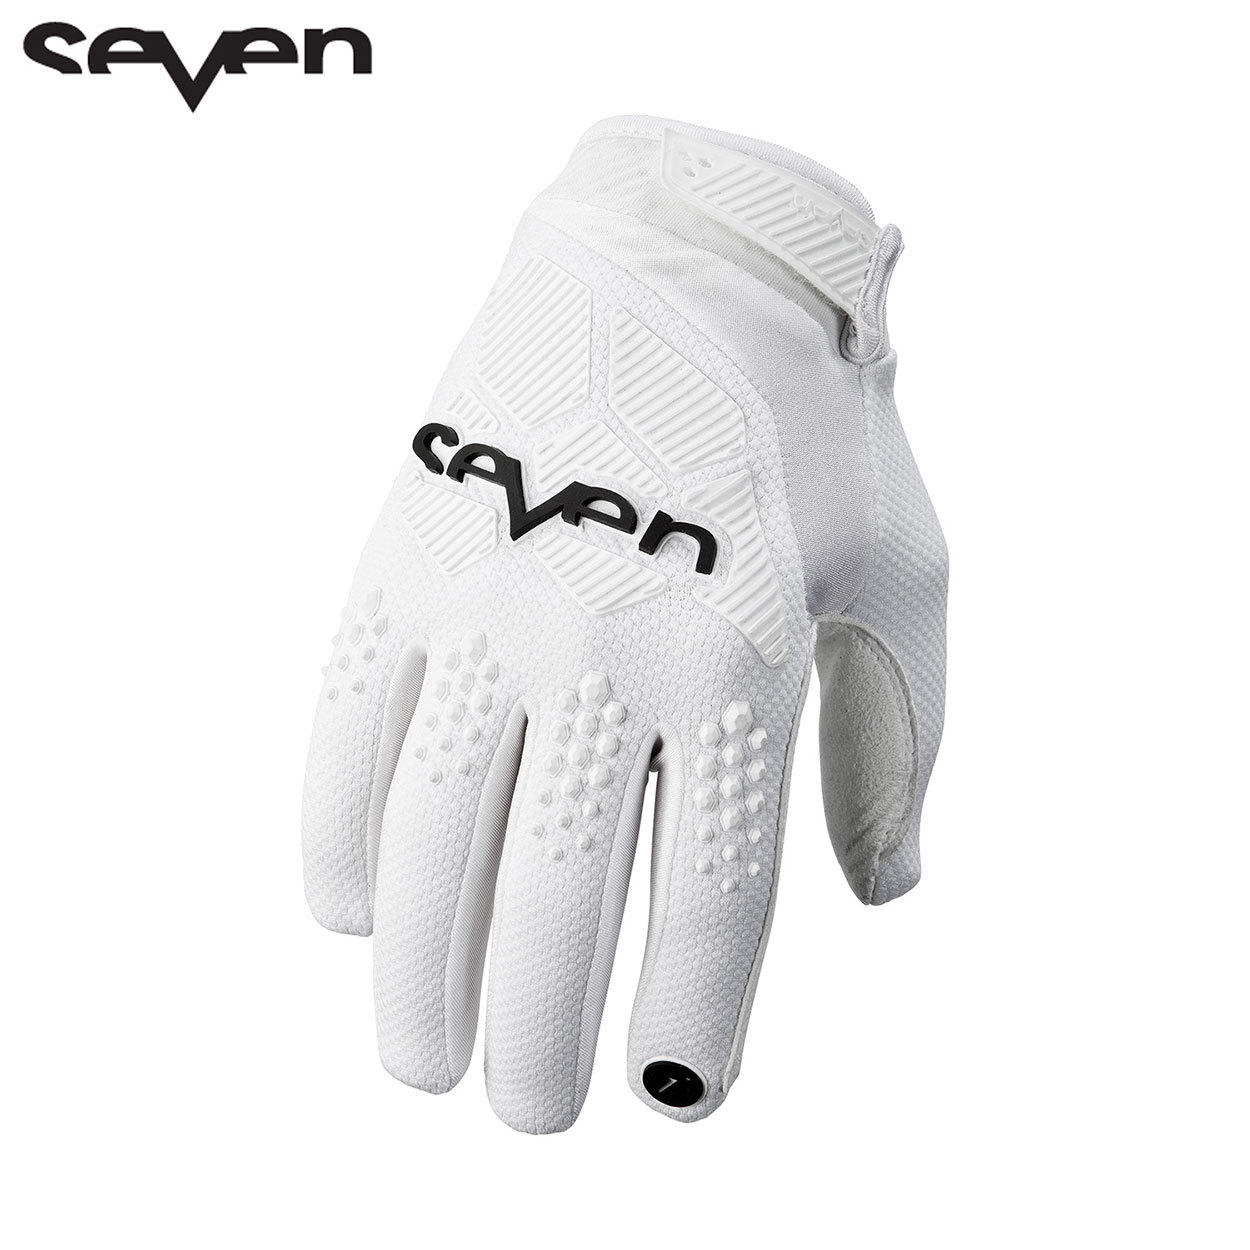 17.1 Rival Adult Glove Off-roadgloves